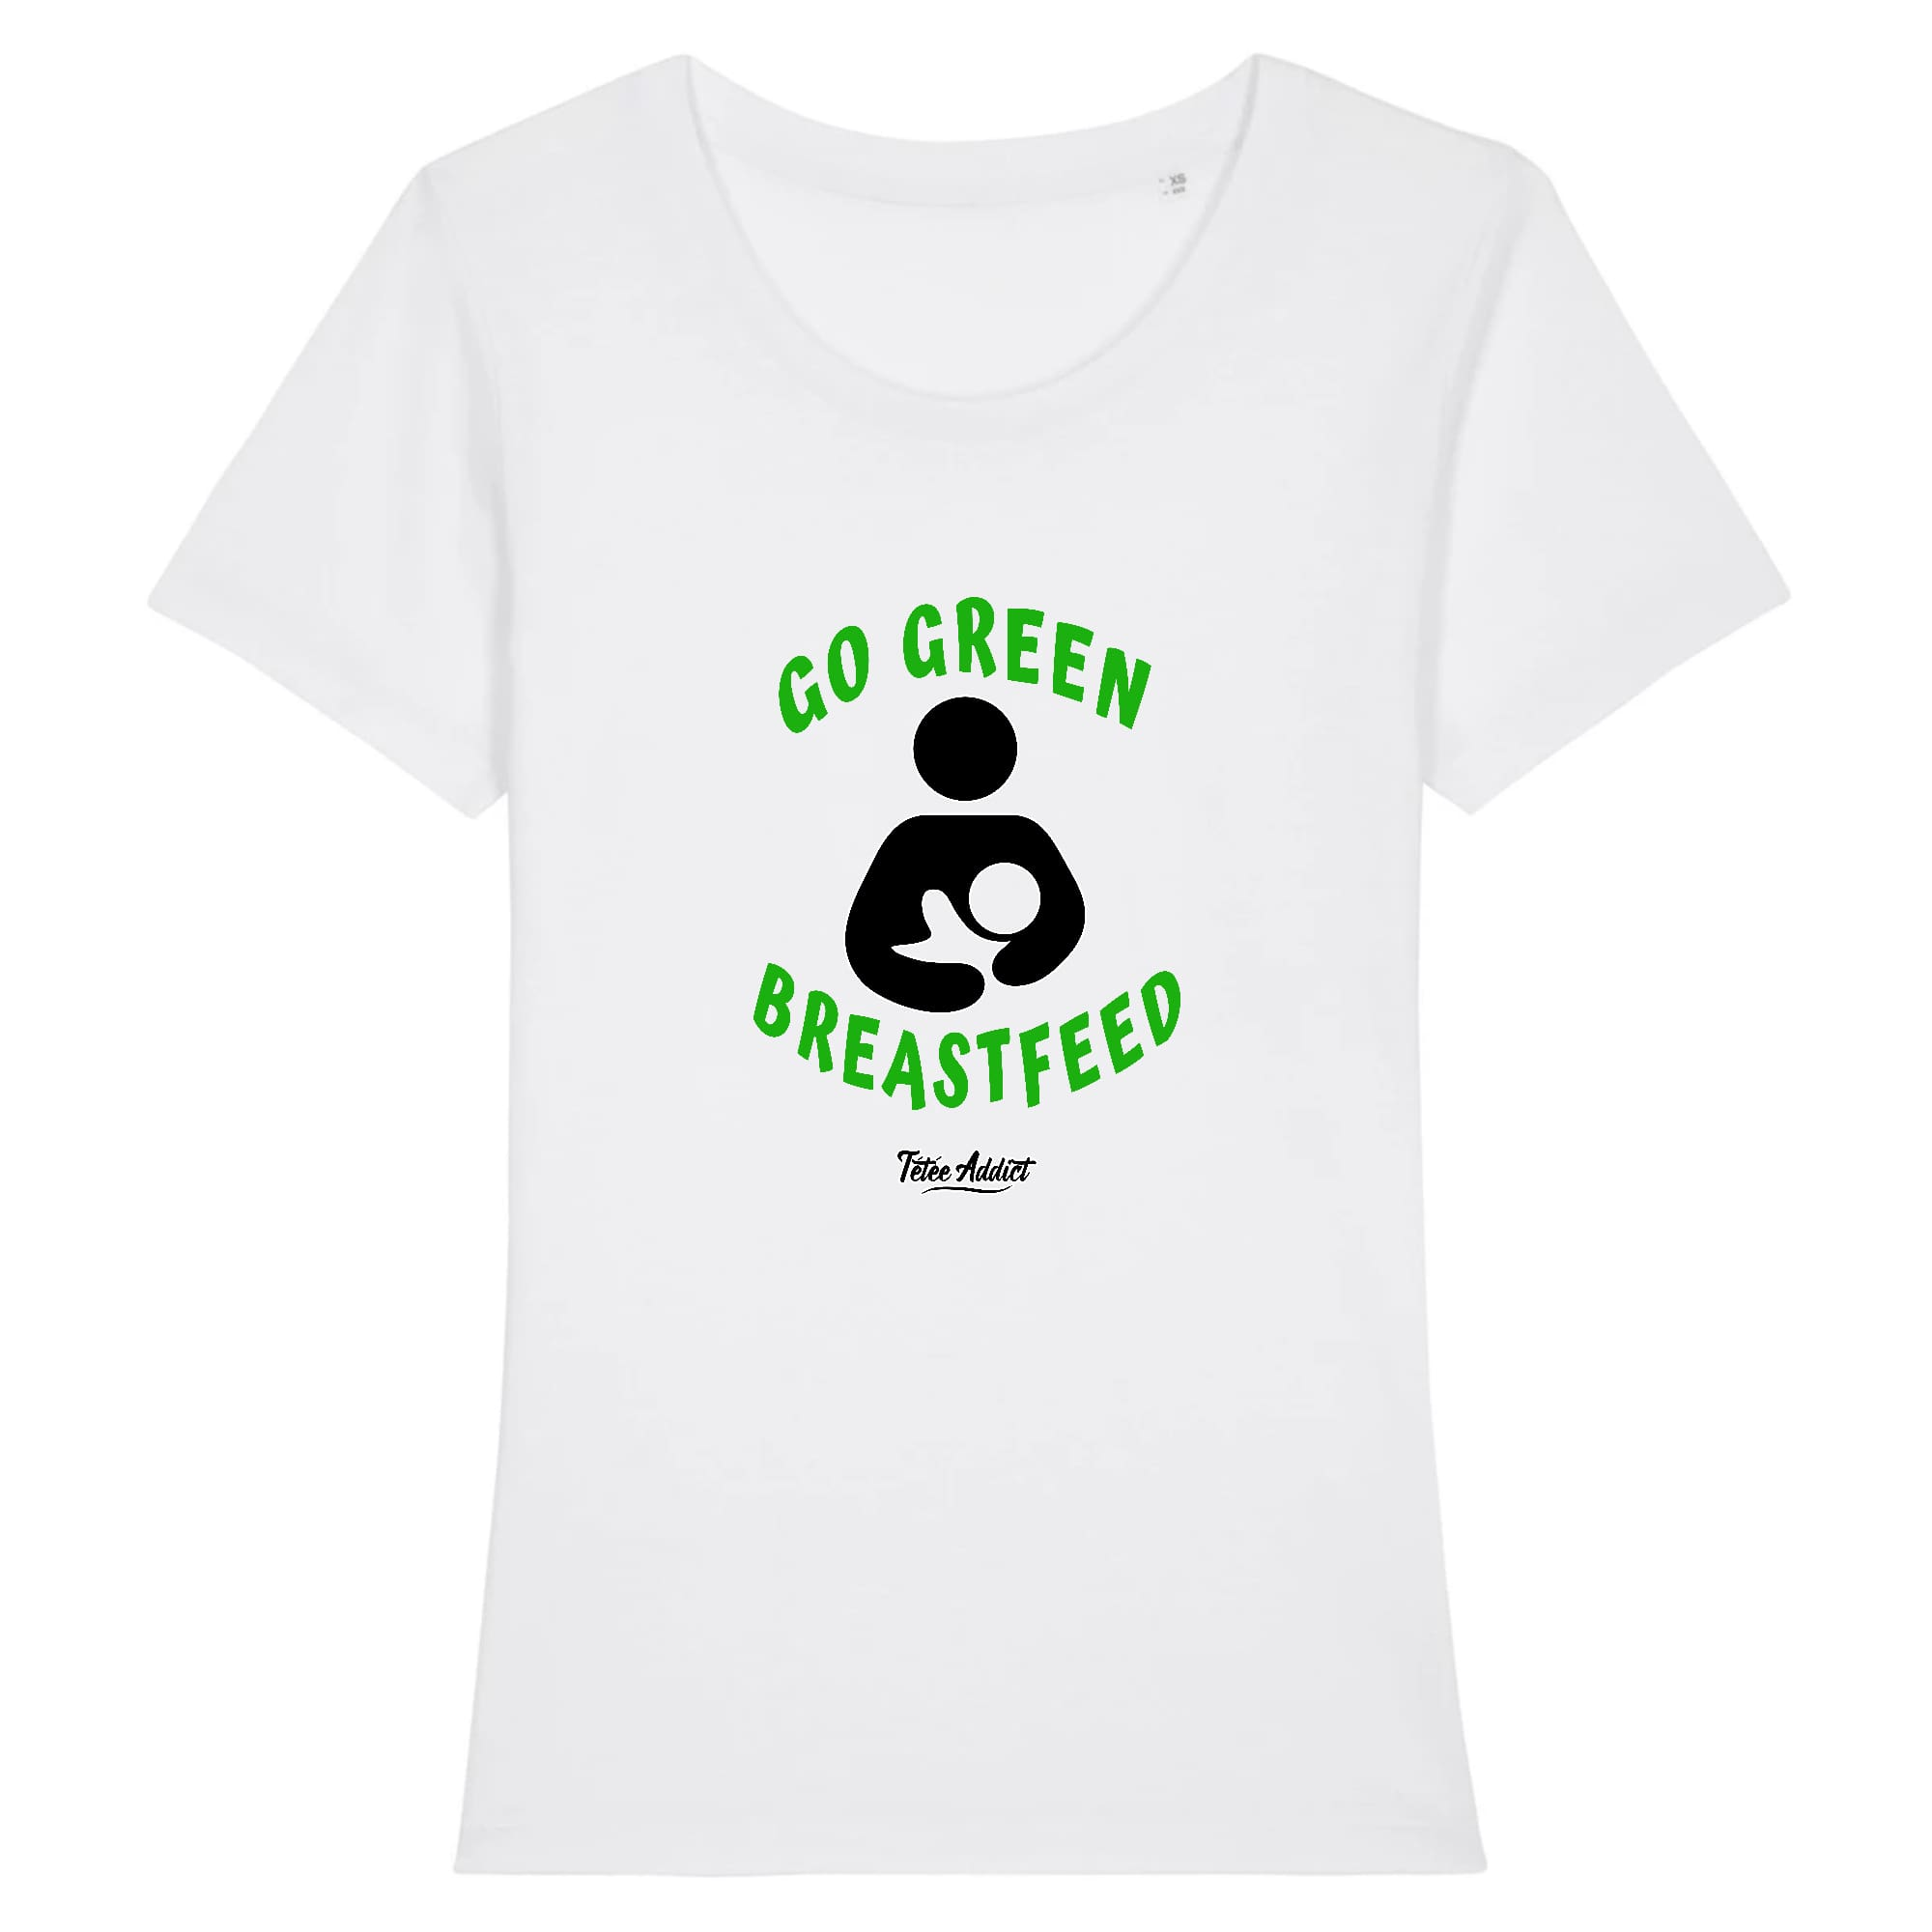 T-shirt Allaitement - Go Green Breastfeed